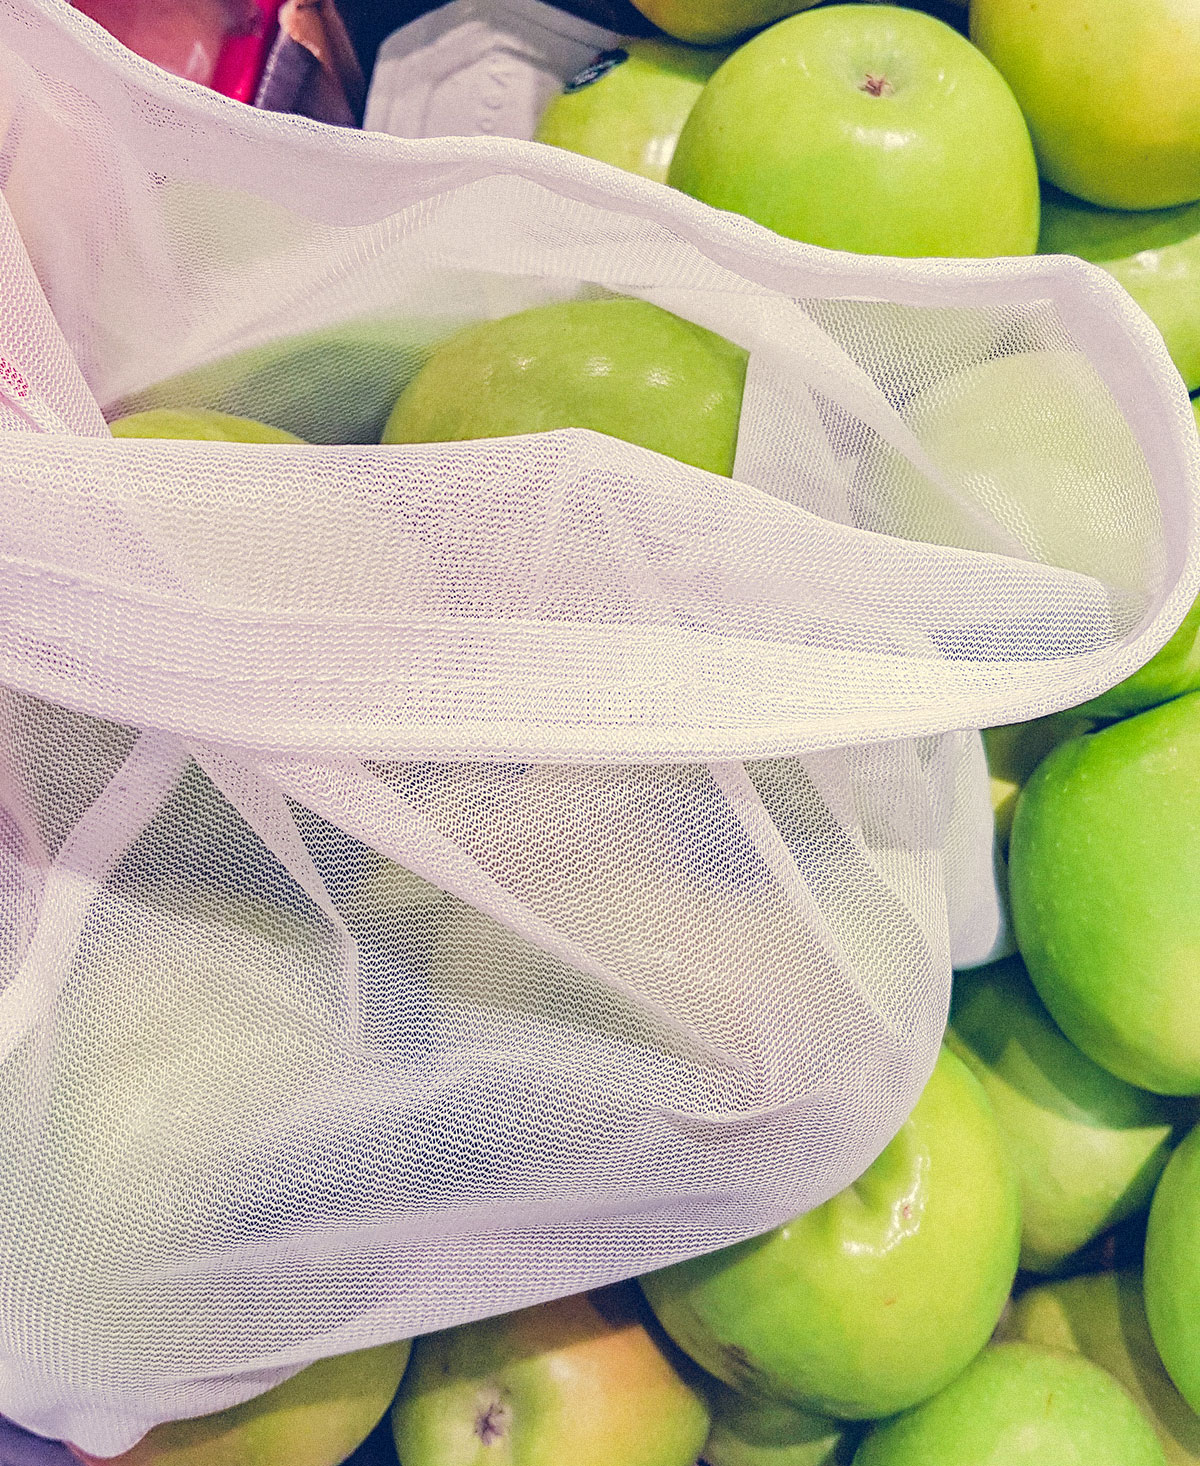 Photo of apples in produce section at store with fabric produce bag